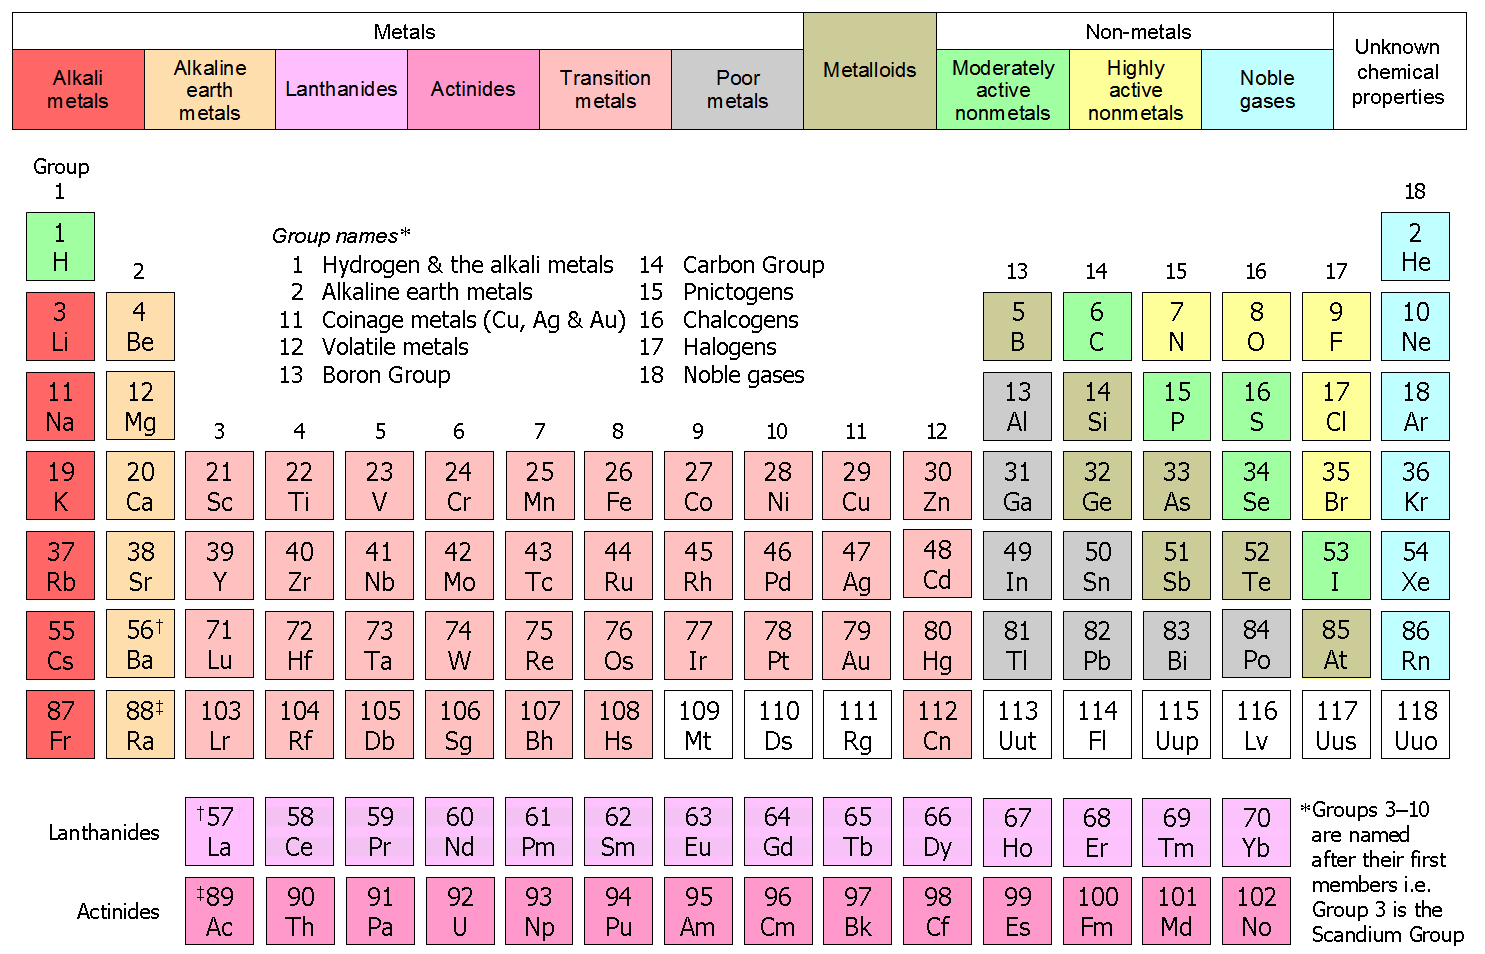 Structure of the modern periodic table chem in 10 online image httpsuploadmediawikipediacommons338r20g0 there are two general classifications to know about the elements on the periodic table gamestrikefo Images